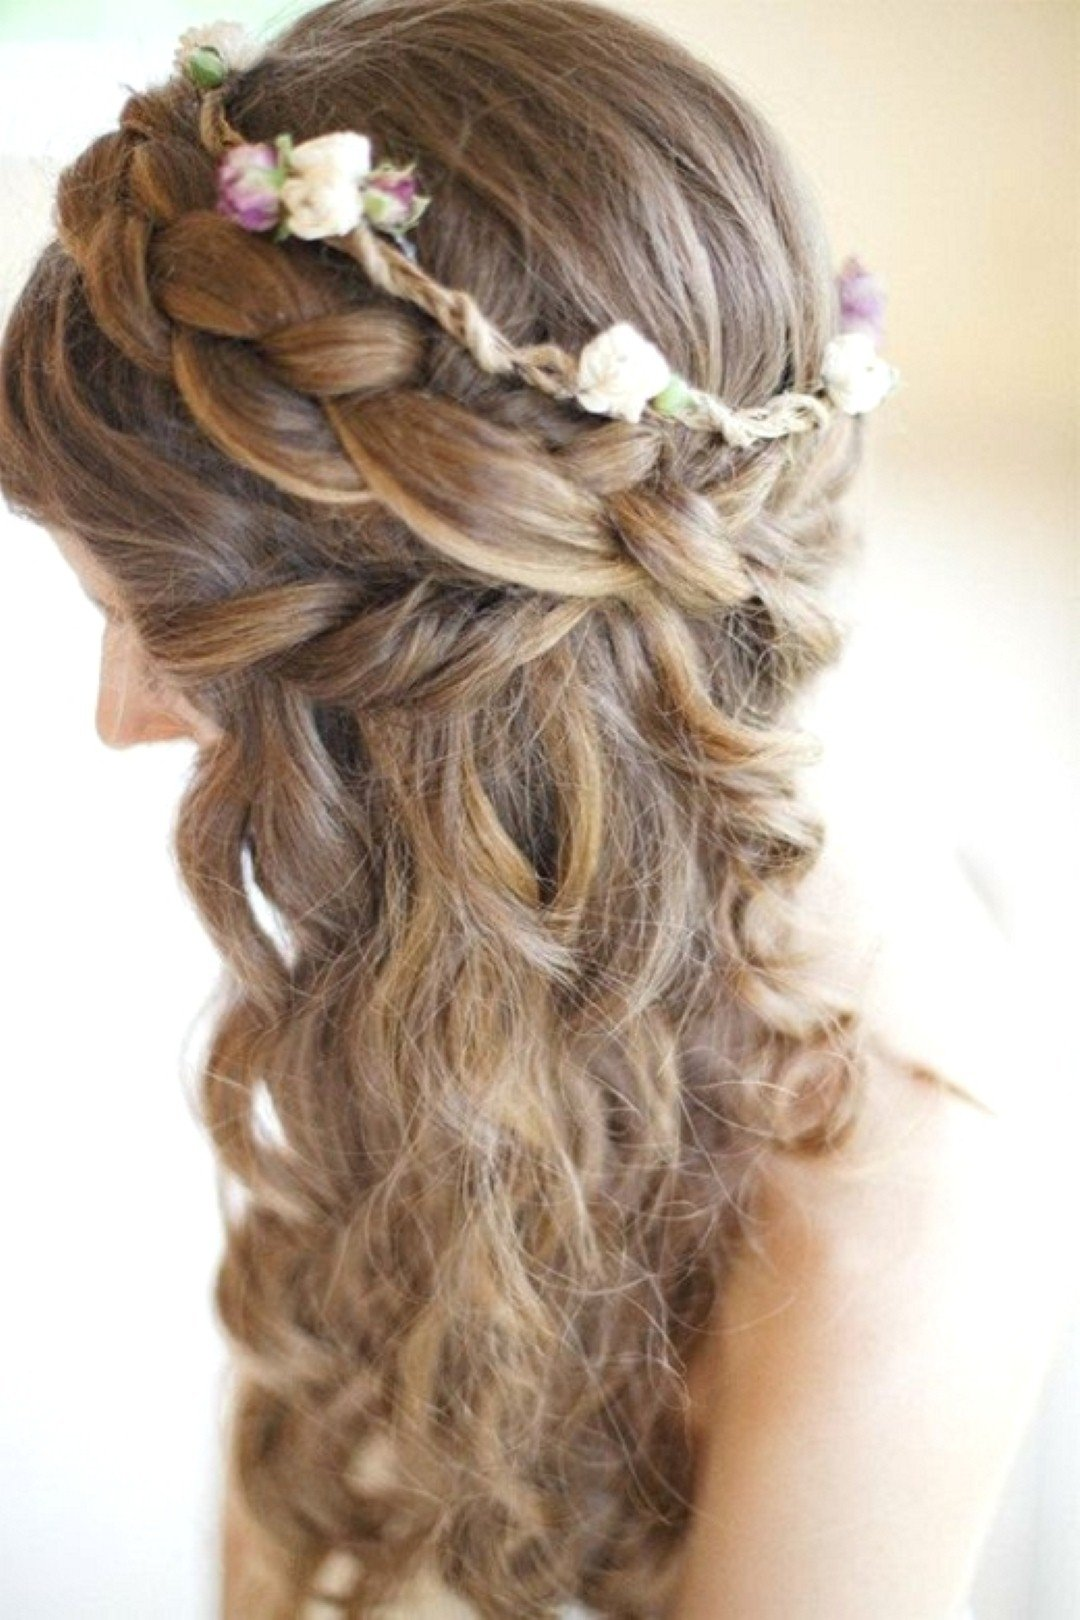 10 Famous Hairstyles Ideas For Long Hair 30 prettiest homecoming hairstyles ideas prom hairstyles prom and 2020